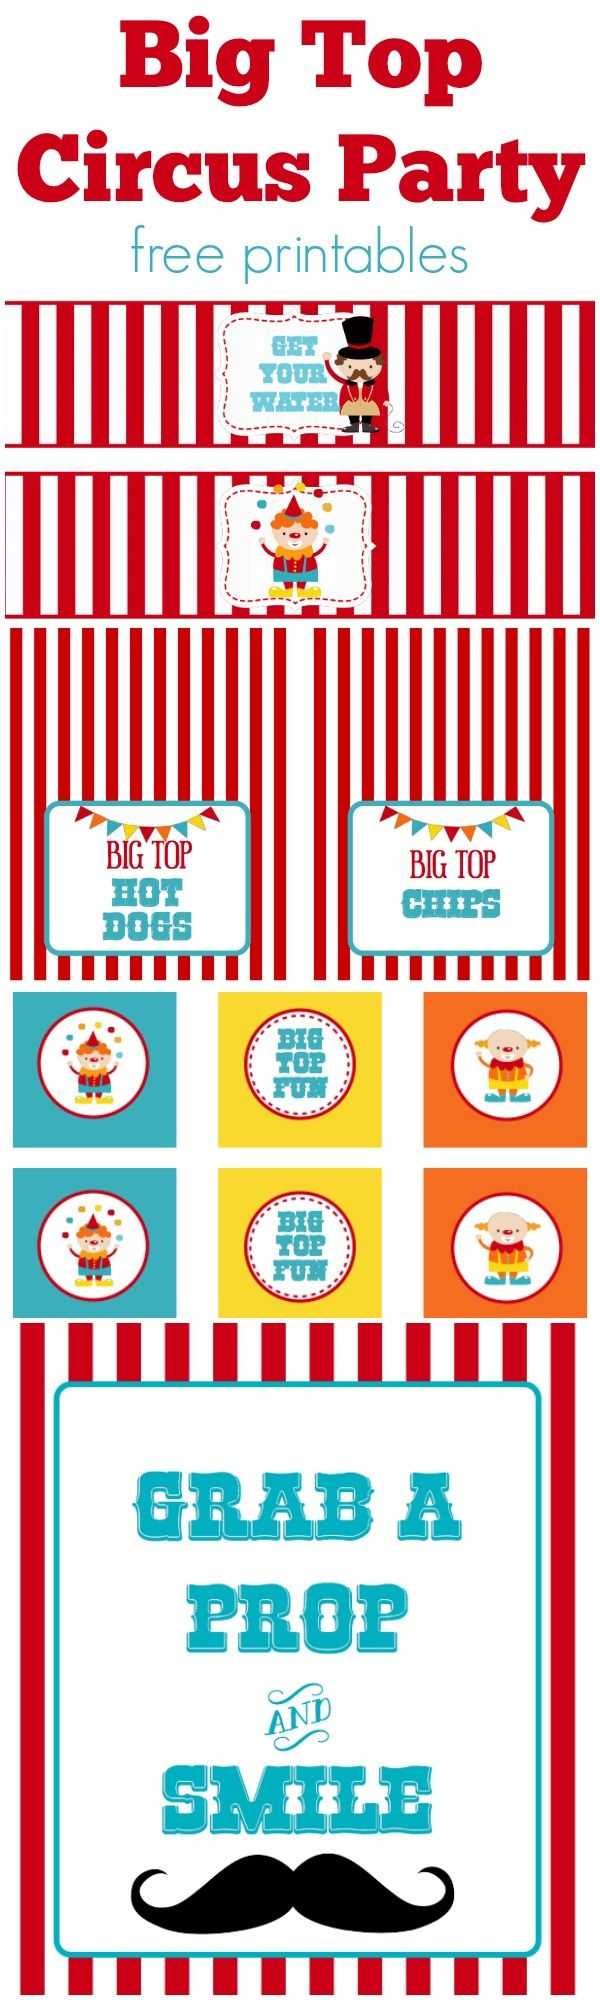 Circus Party | Free Printables | Free Printables | Pinterest - Free Printable Carnival Decorations